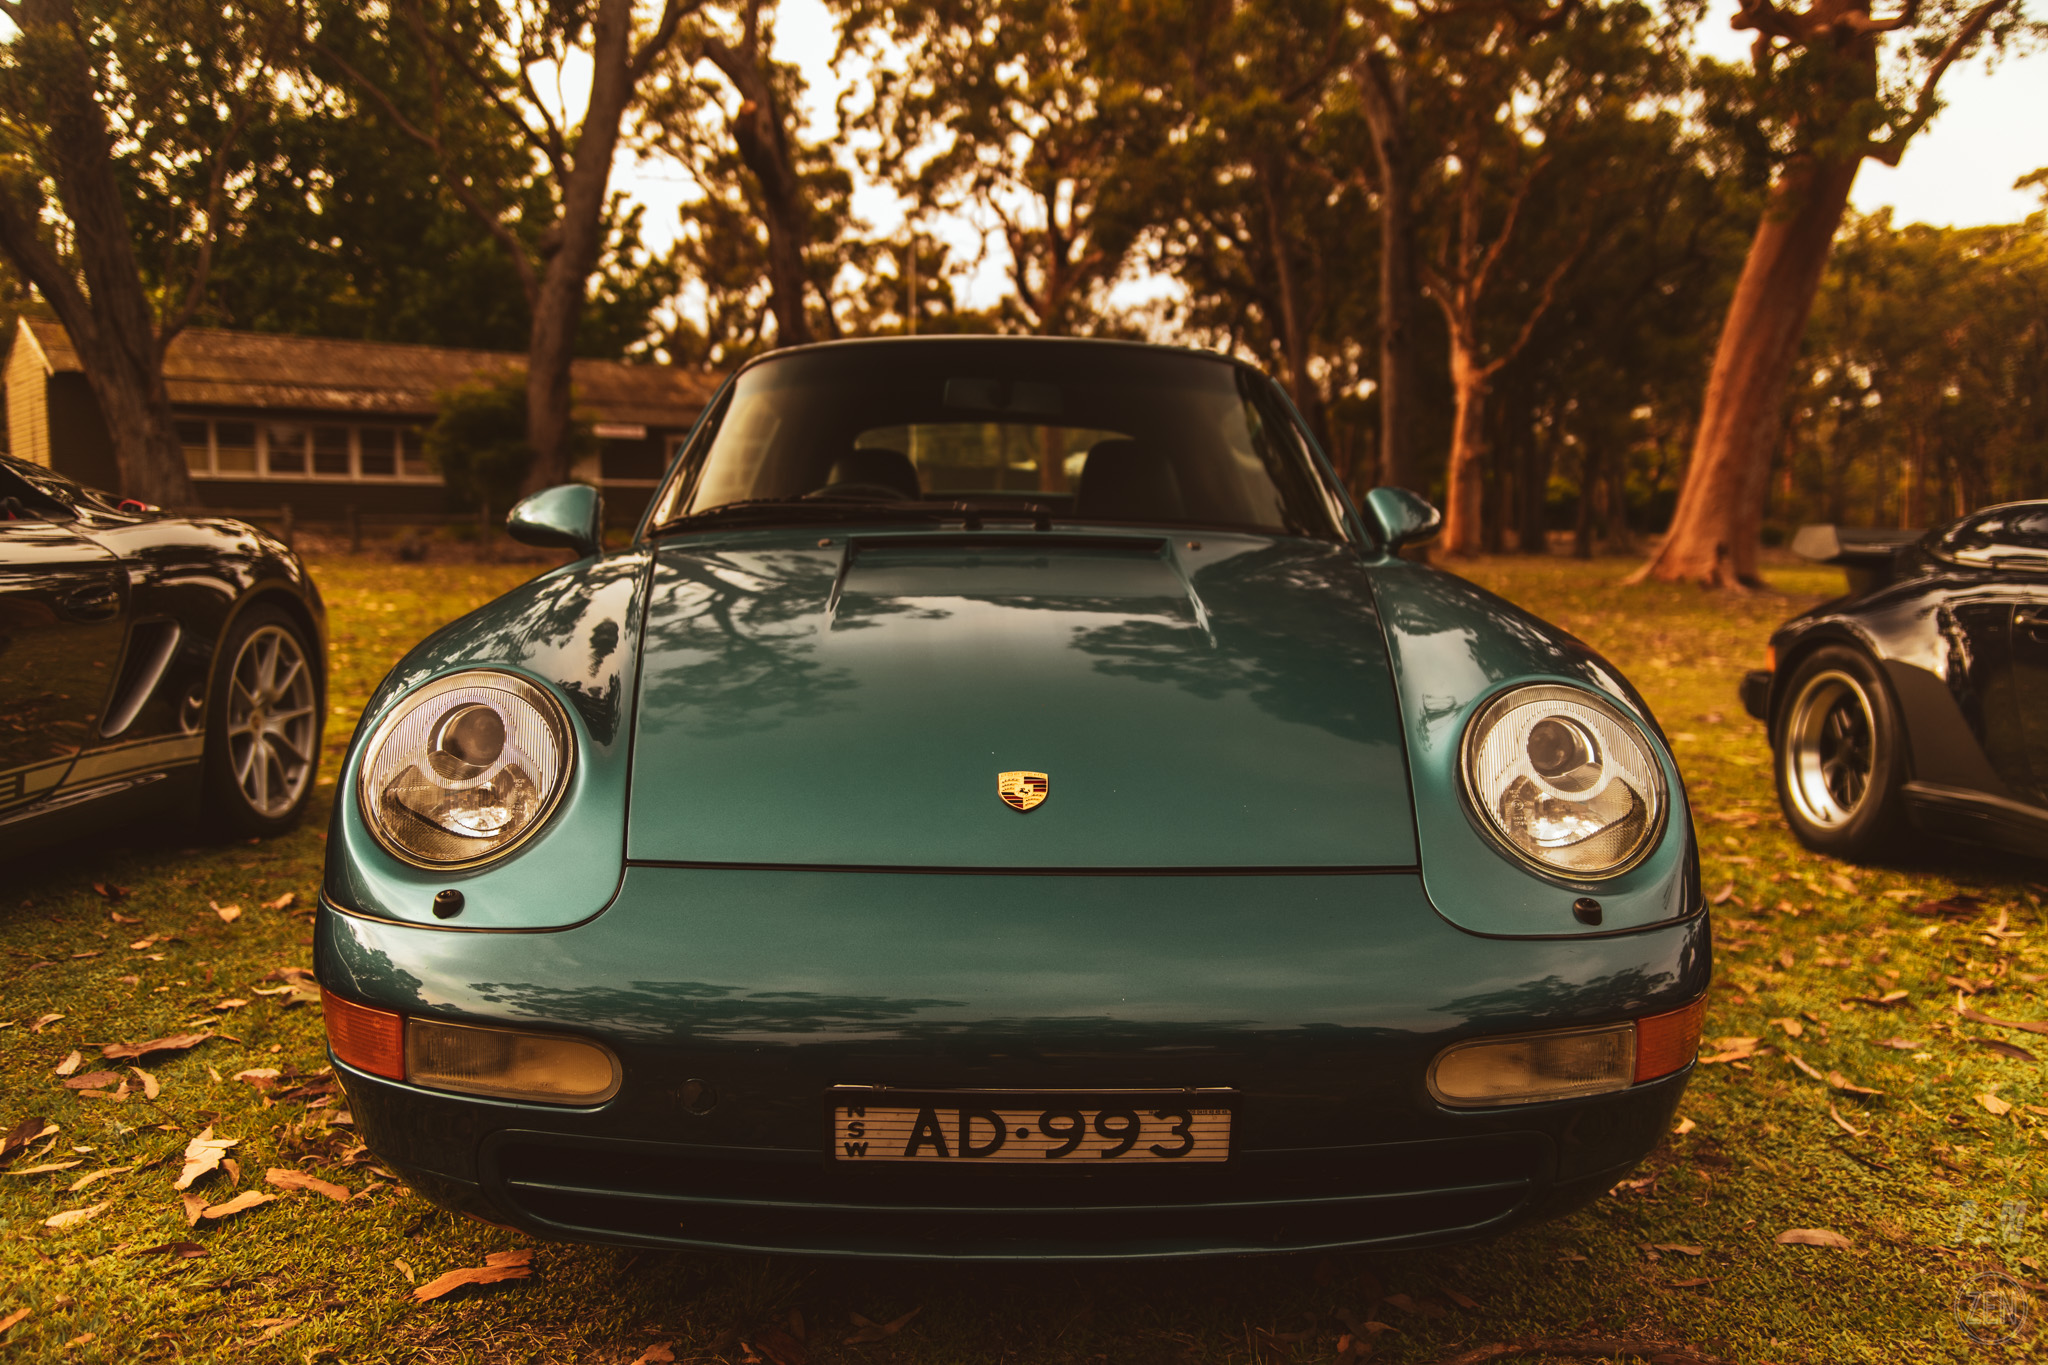 2019-12-08 - Porsches & Coffee 036